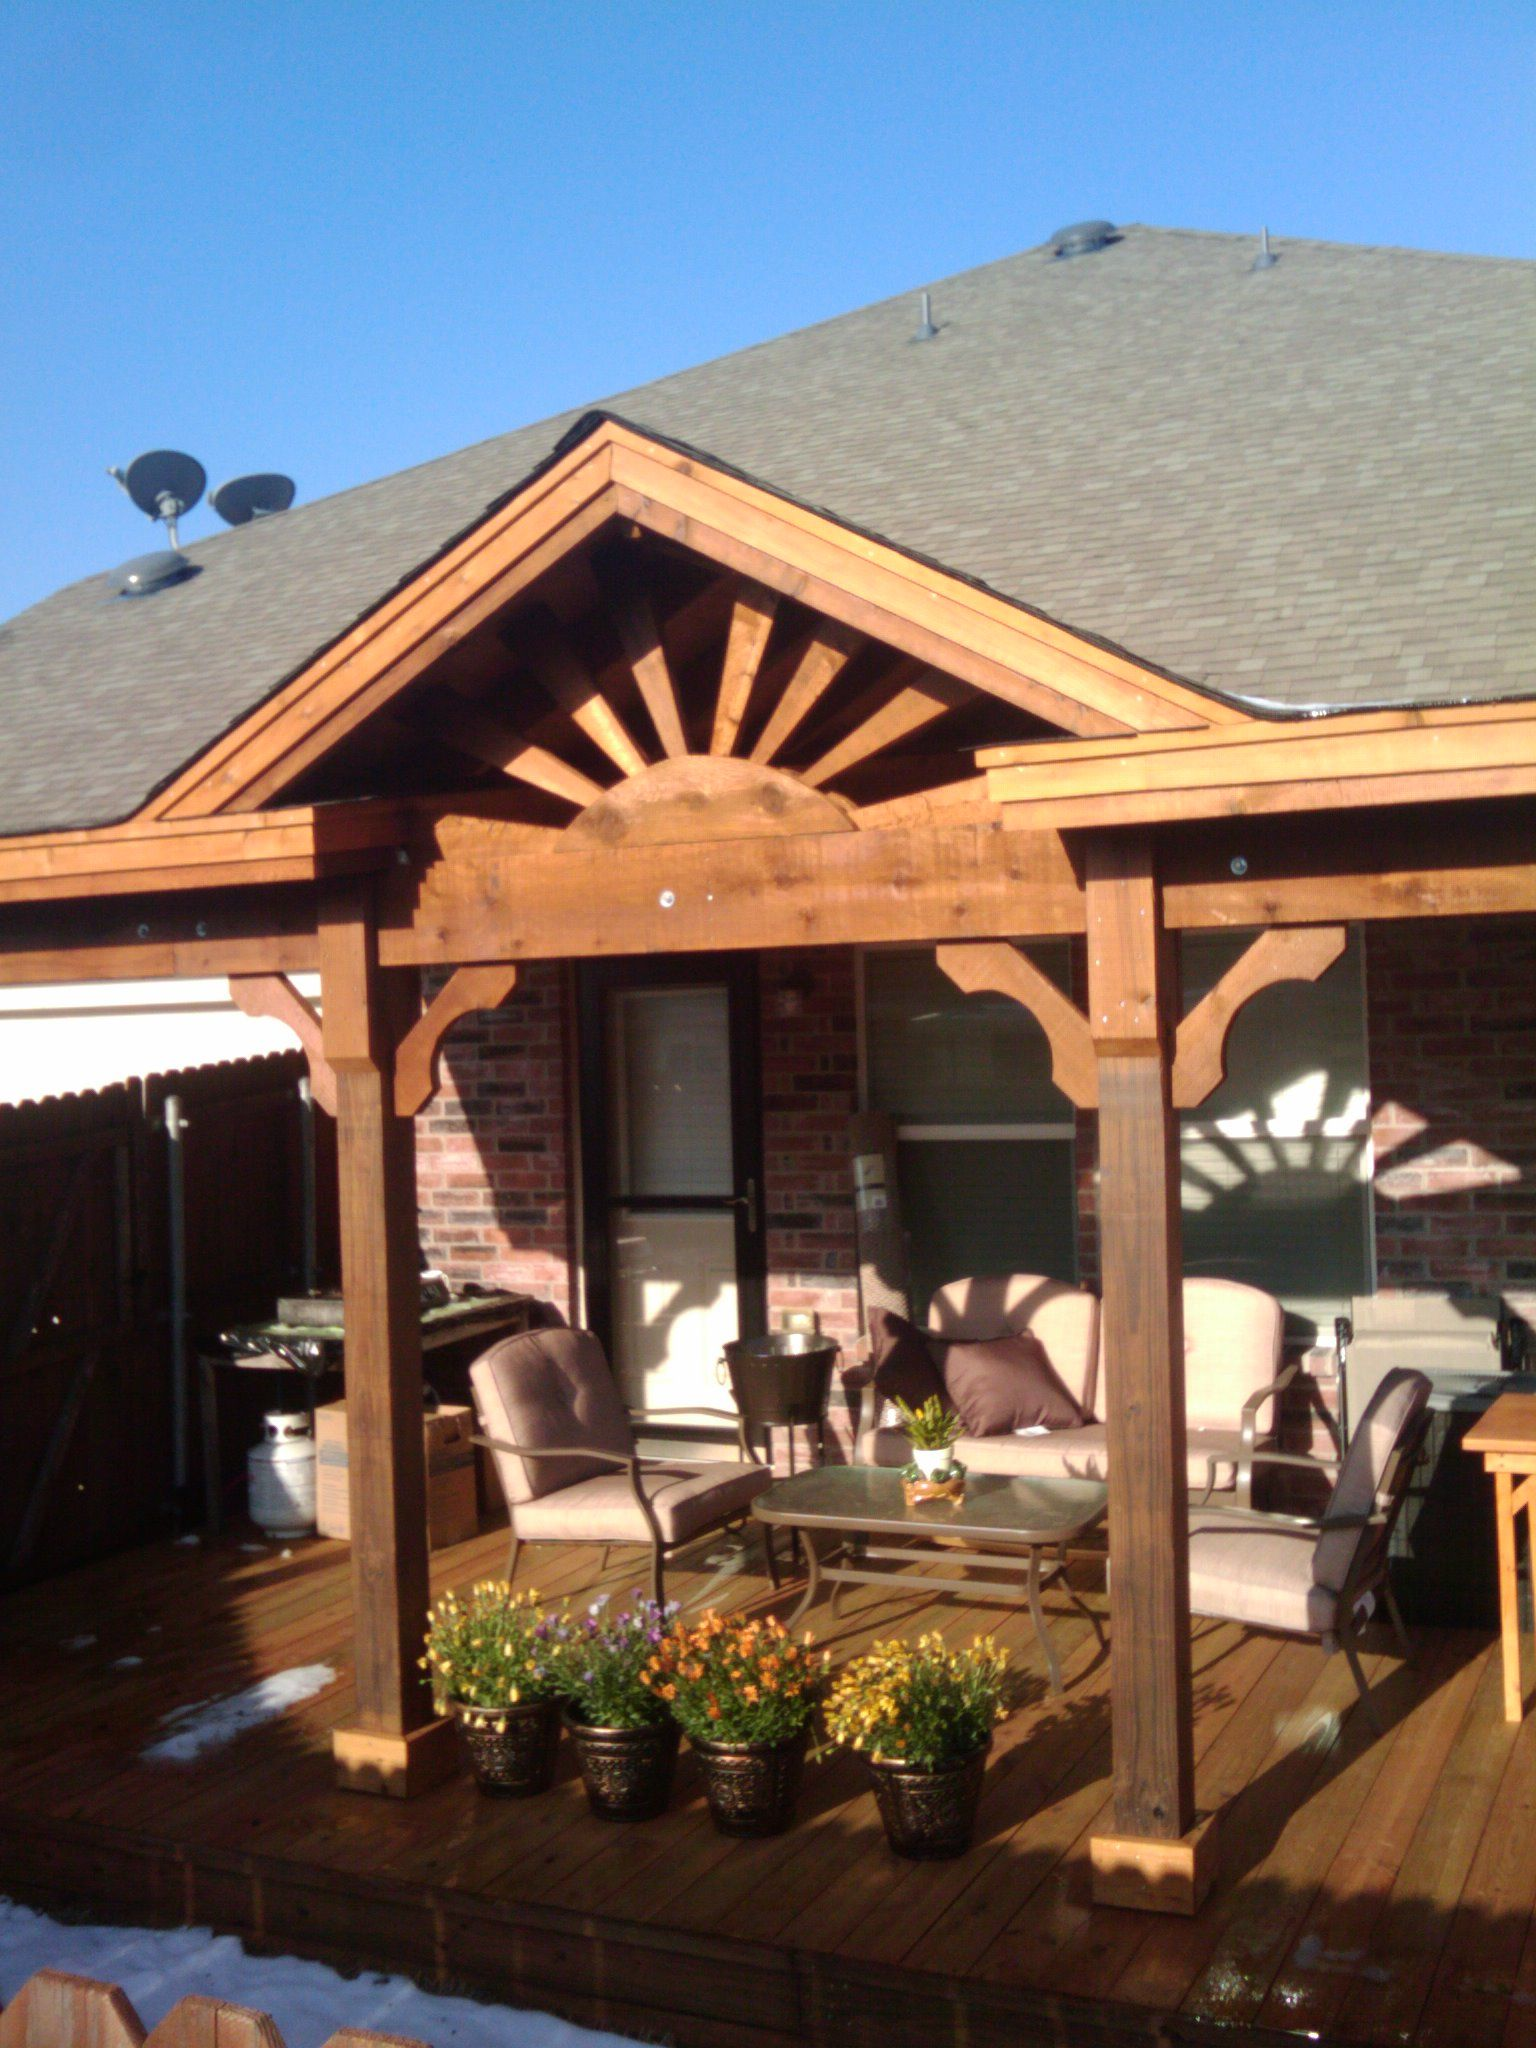 cover house wood forum kitchen bravo outdoor patio to pergola build attached how forno a design shade for page fired pin the